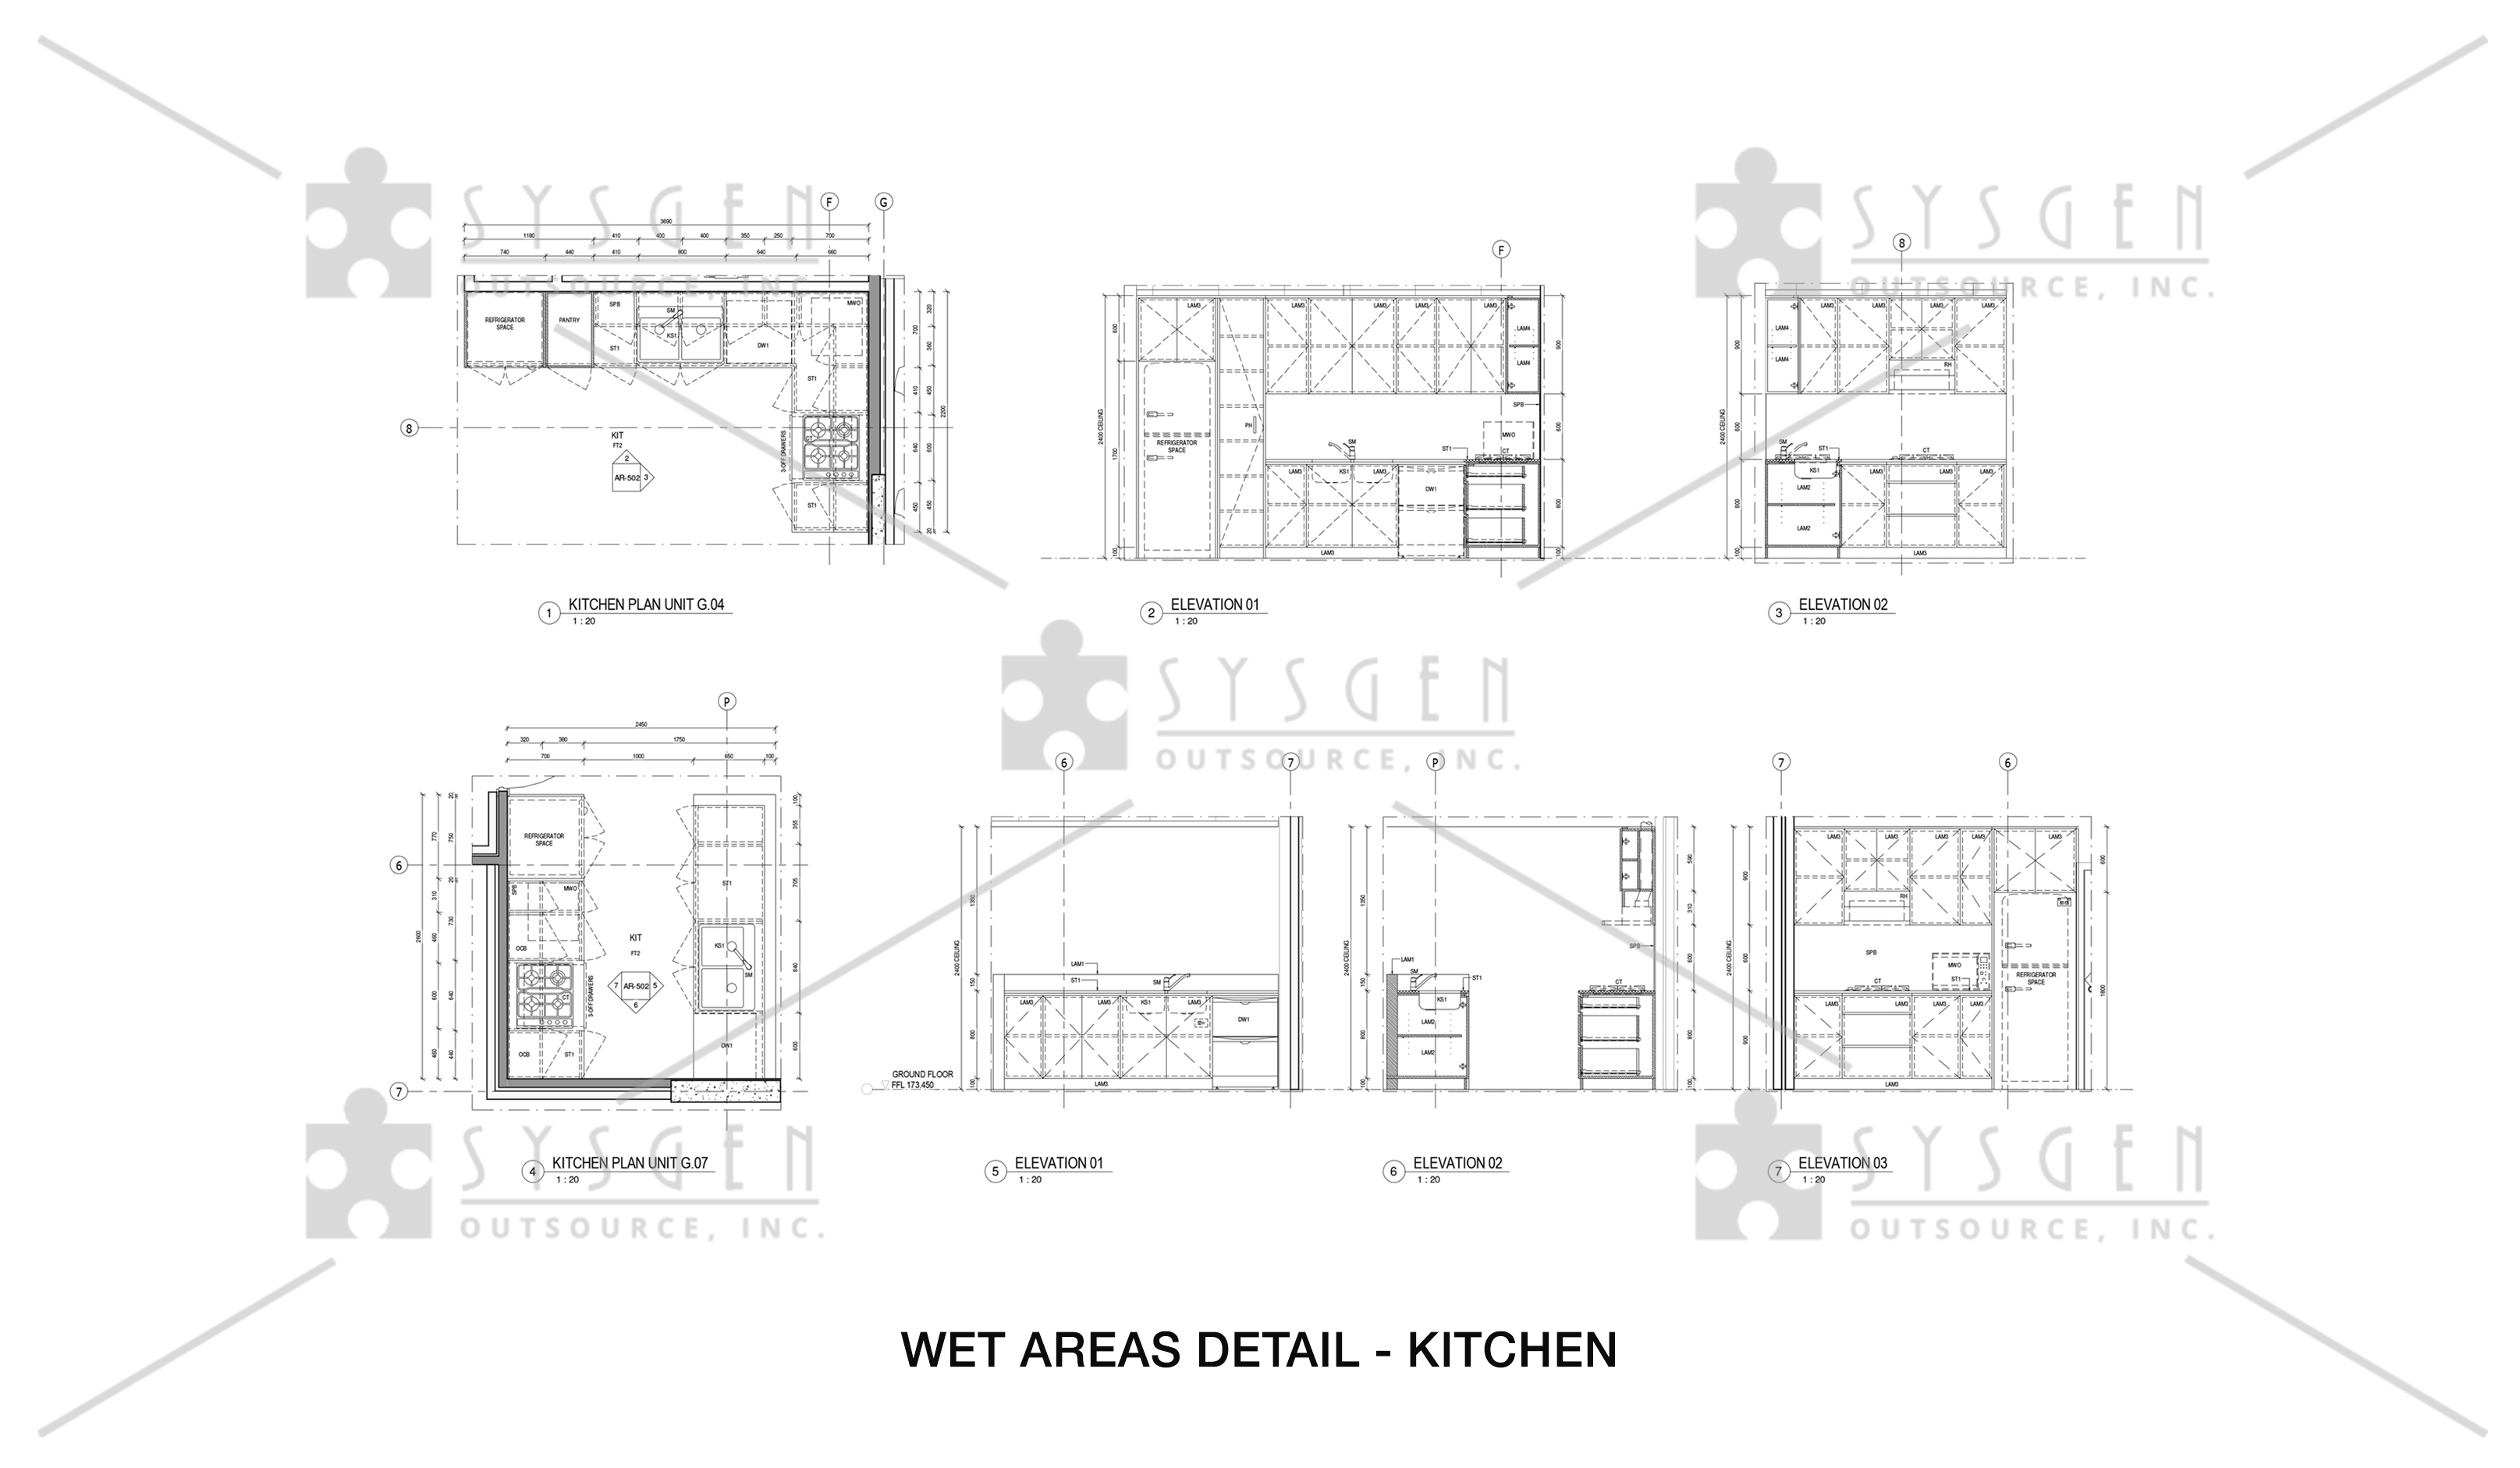 sysgen-outsource-cad-outsourcing-services-cad-conversion-revit-4-storey-residential17